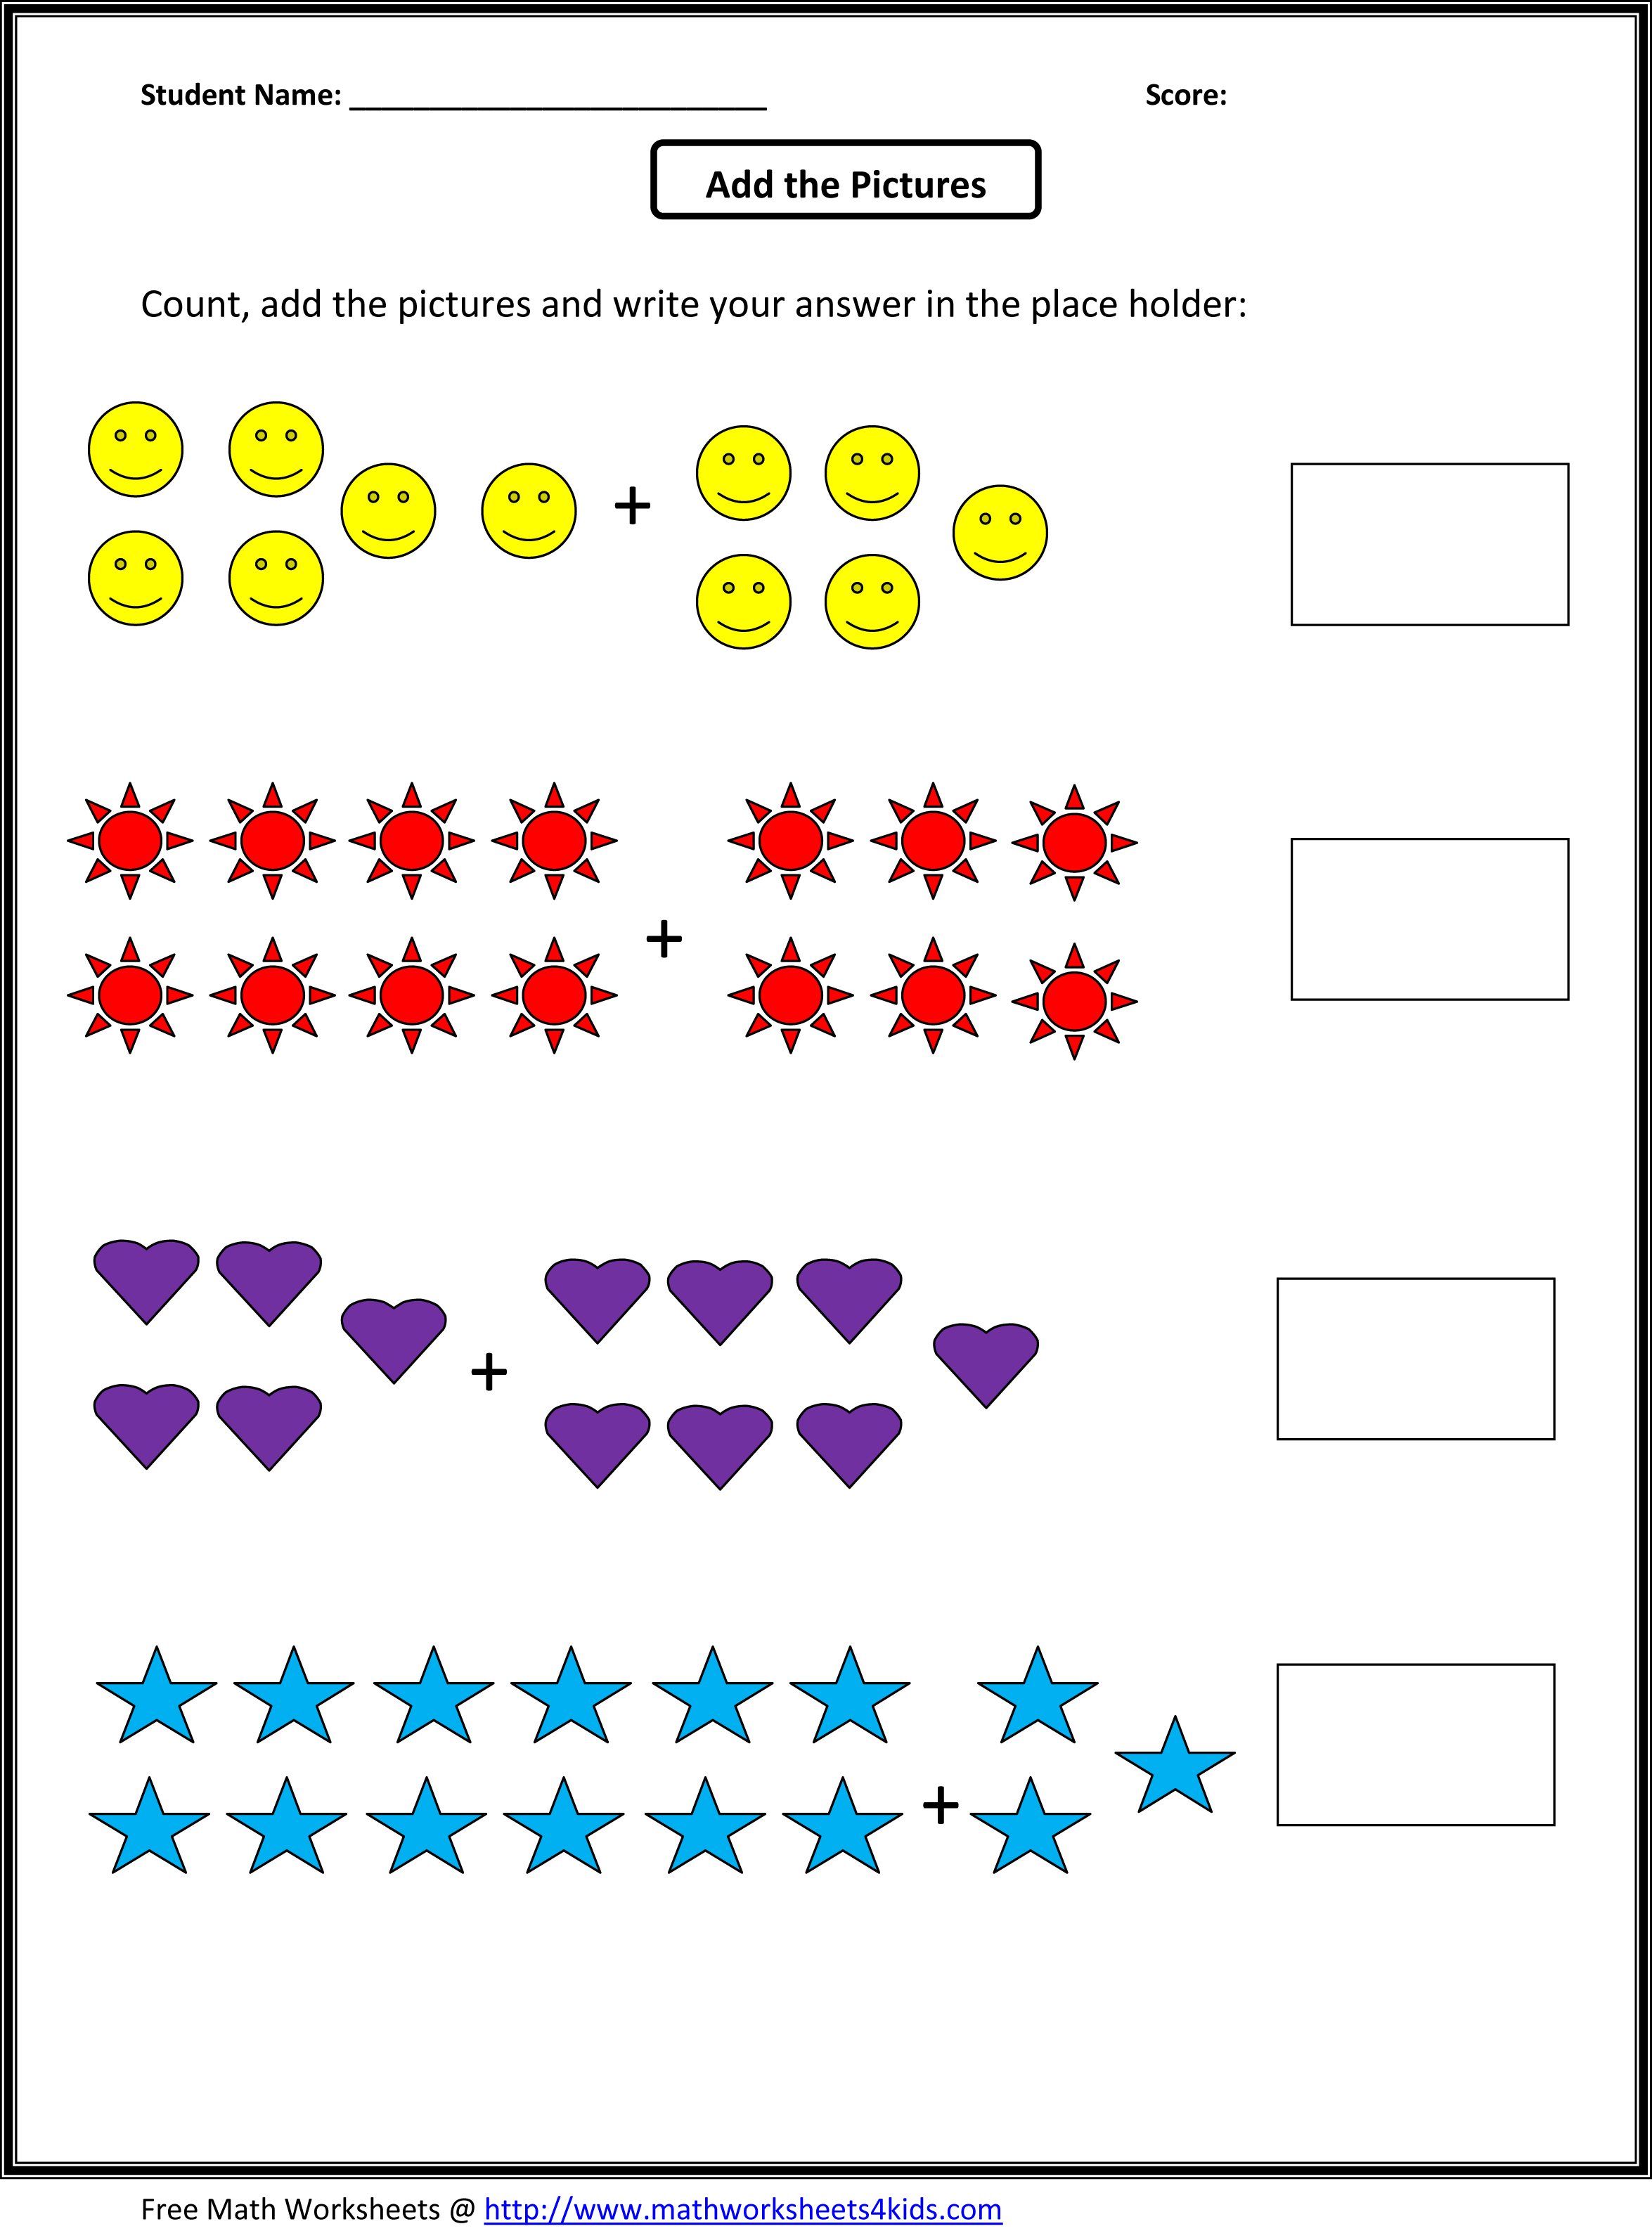 Proatmealus  Gorgeous Grade  Maths Worksheet  Reocurent With Lovely Math Worksheets For St Grade Free  Reocurent With Adorable Bullying Worksheets Ks Also Exclamation Worksheets In Addition Probability Experiments Worksheets And Two Step Problem Solving Worksheets As Well As Bar Graph Worksheets Grade  Additionally Water Conservation For Kids Worksheets From Reocurentcom With Proatmealus  Lovely Grade  Maths Worksheet  Reocurent With Adorable Math Worksheets For St Grade Free  Reocurent And Gorgeous Bullying Worksheets Ks Also Exclamation Worksheets In Addition Probability Experiments Worksheets From Reocurentcom